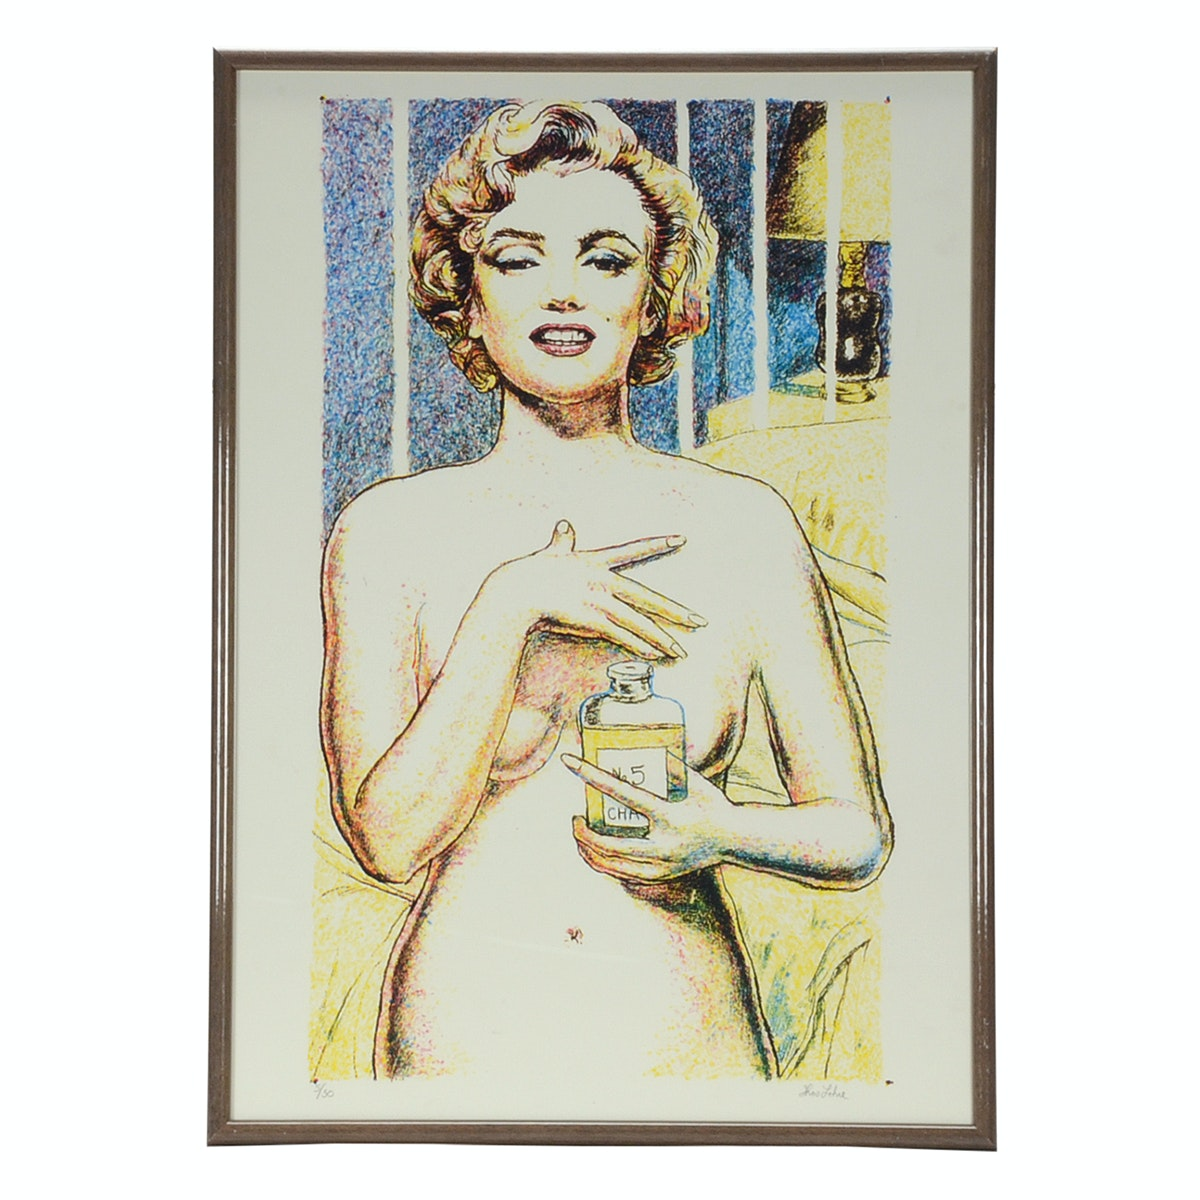 Tom Lohre Signed Limited Edition Serigraph of Marilyn Monroe with Perfume